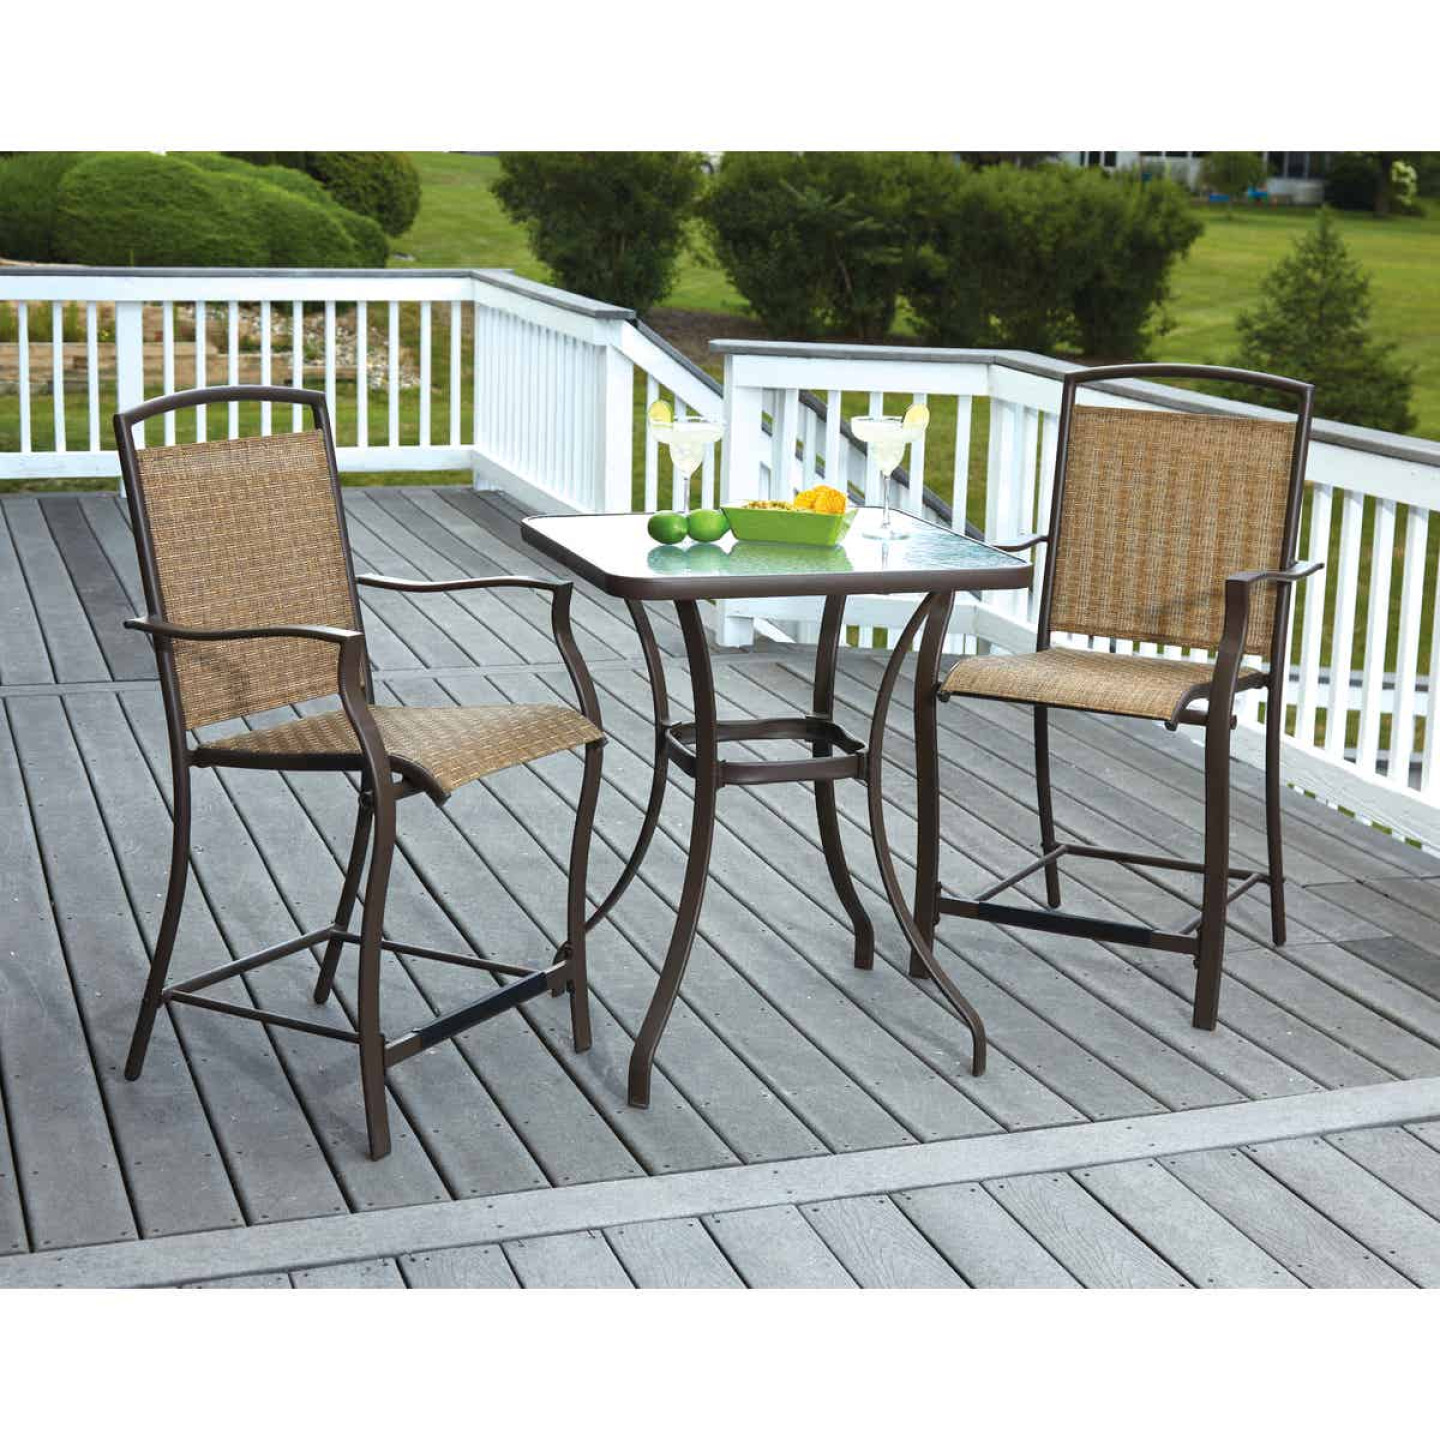 Outdoor Expressions 3-Piece Balcony Bistro Set Image 2